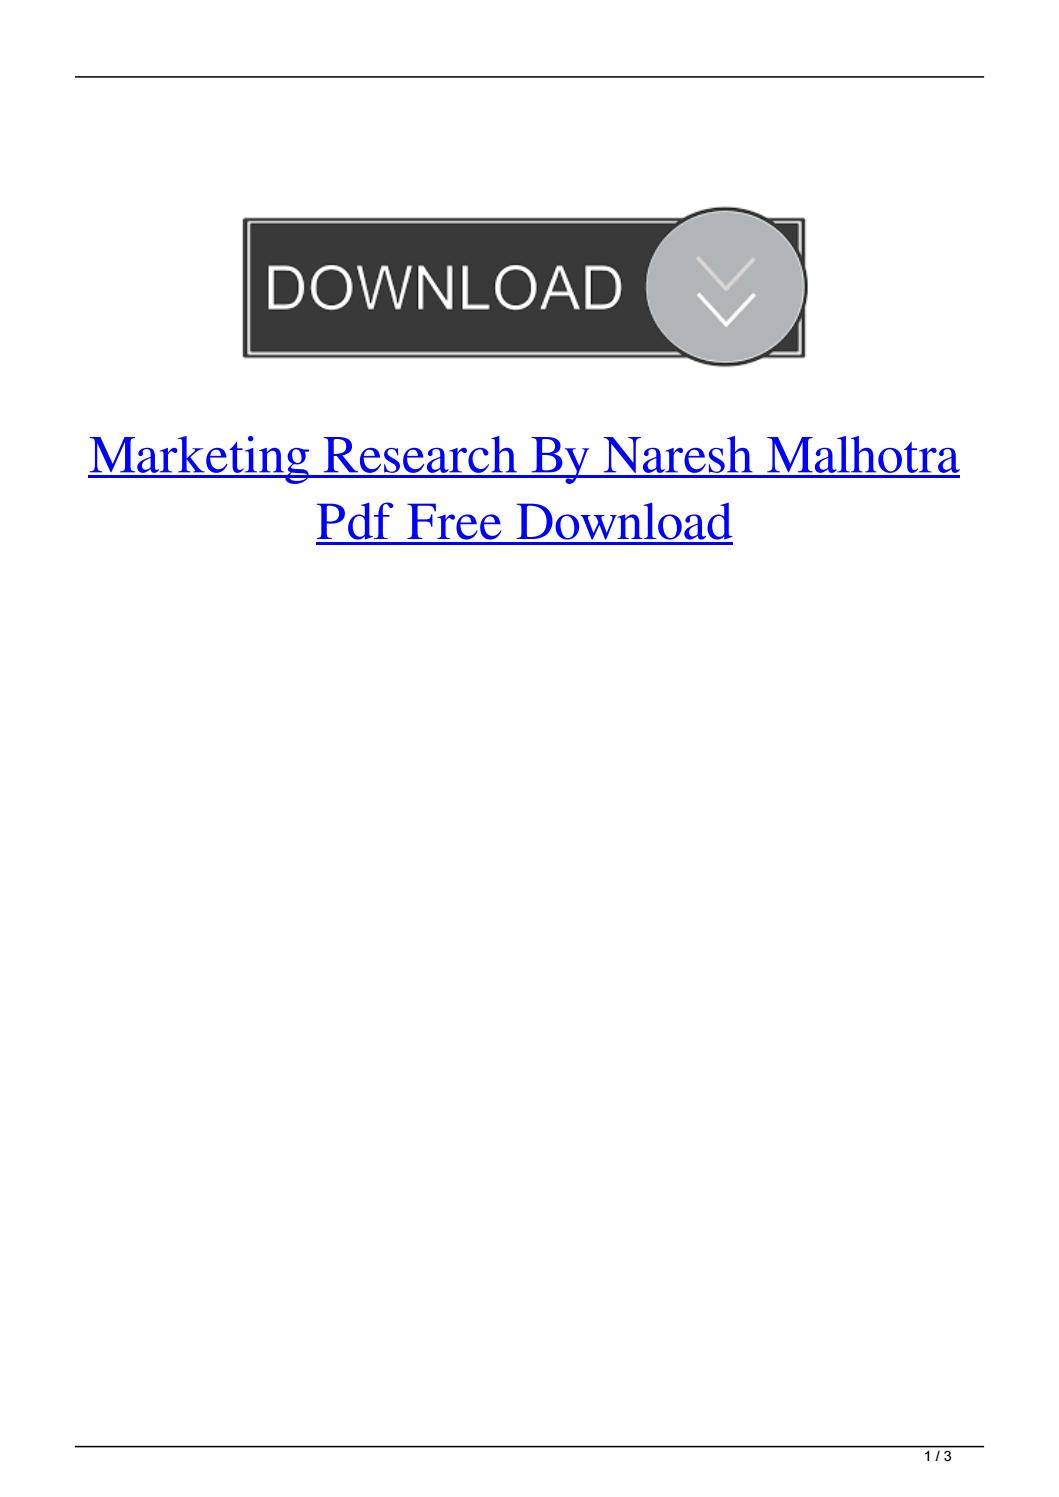 004 Research Paper Marketing Papers Pdf Free Download Page 1 Impressive Full